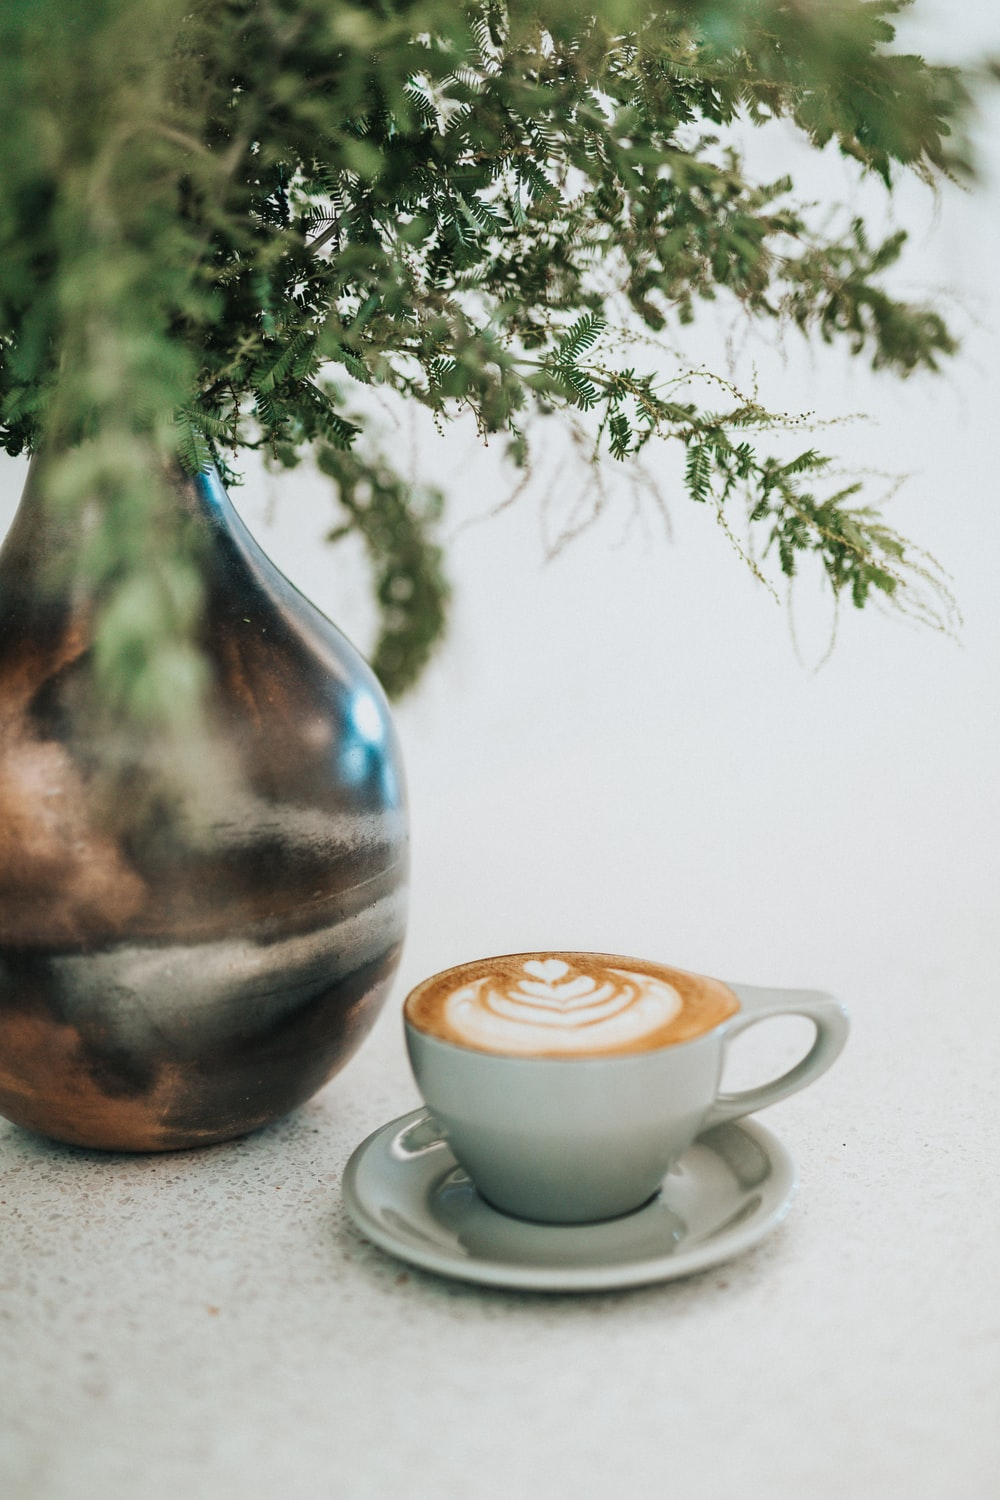 cup of coffee latte near plants in vase